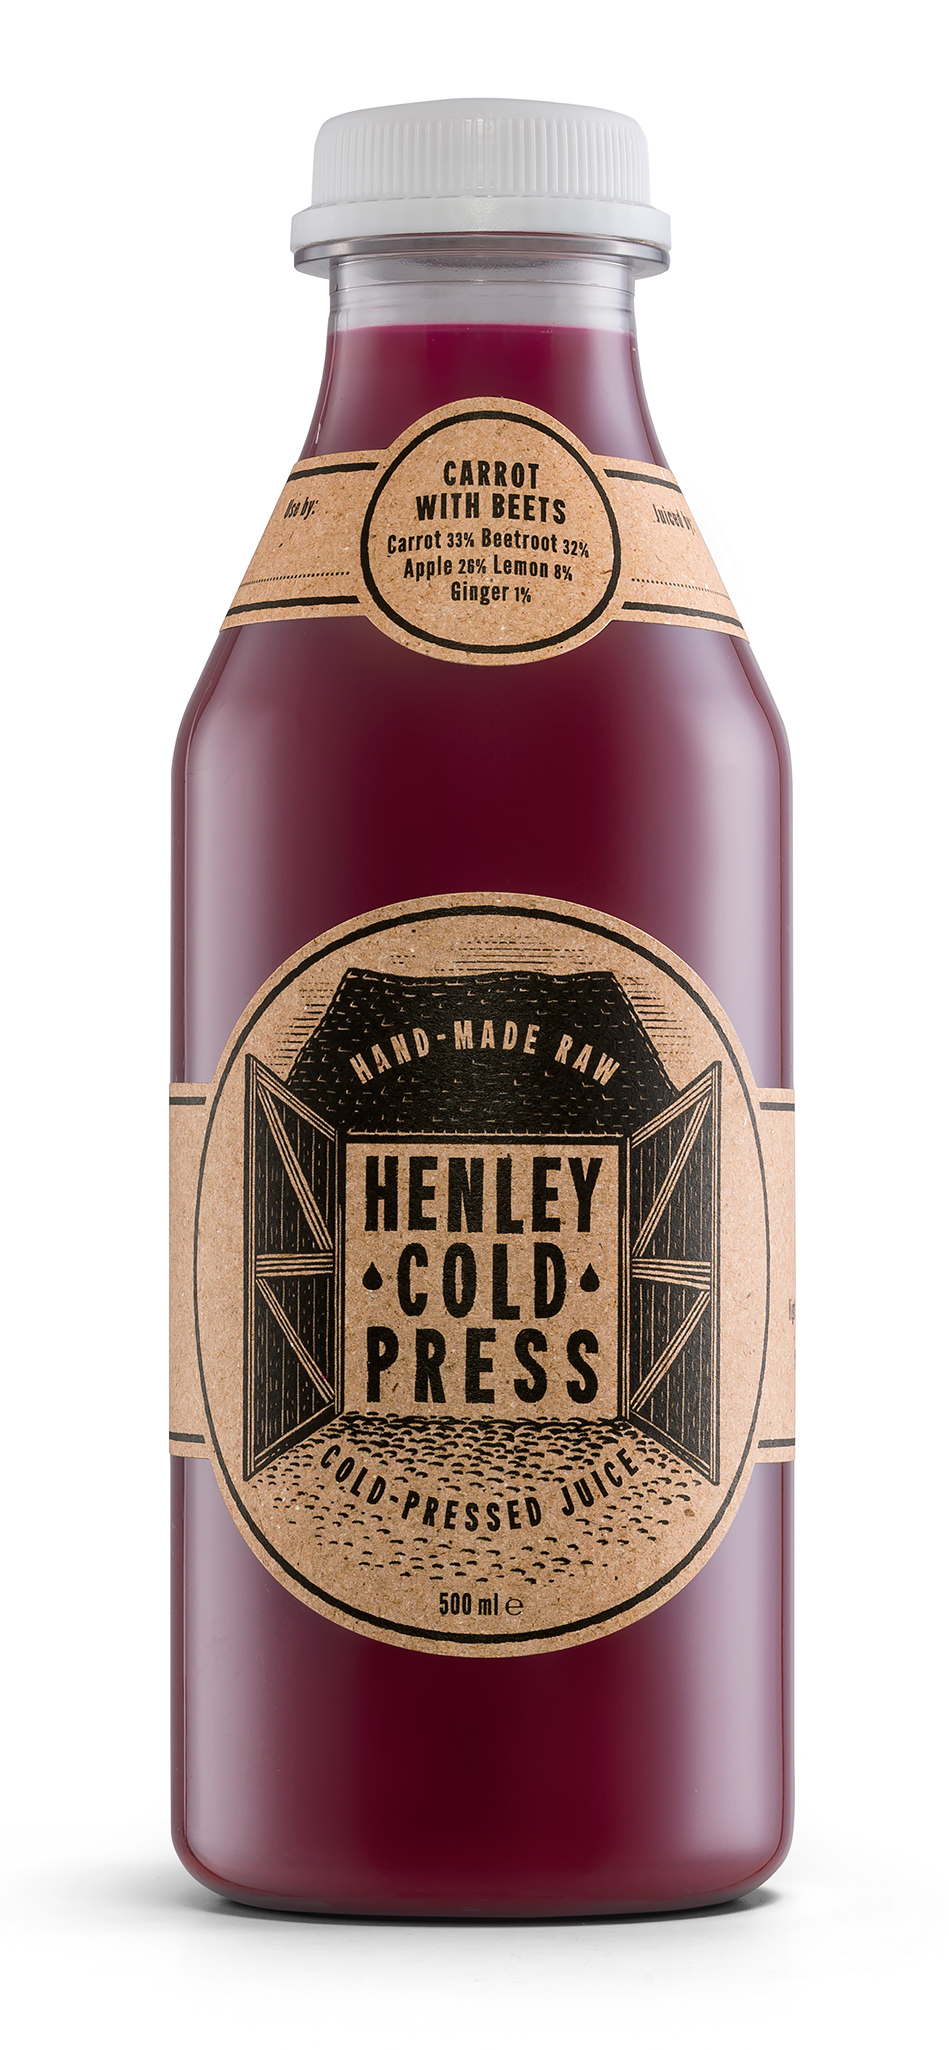 Henley Cold Press Carrots With Beets Bottle